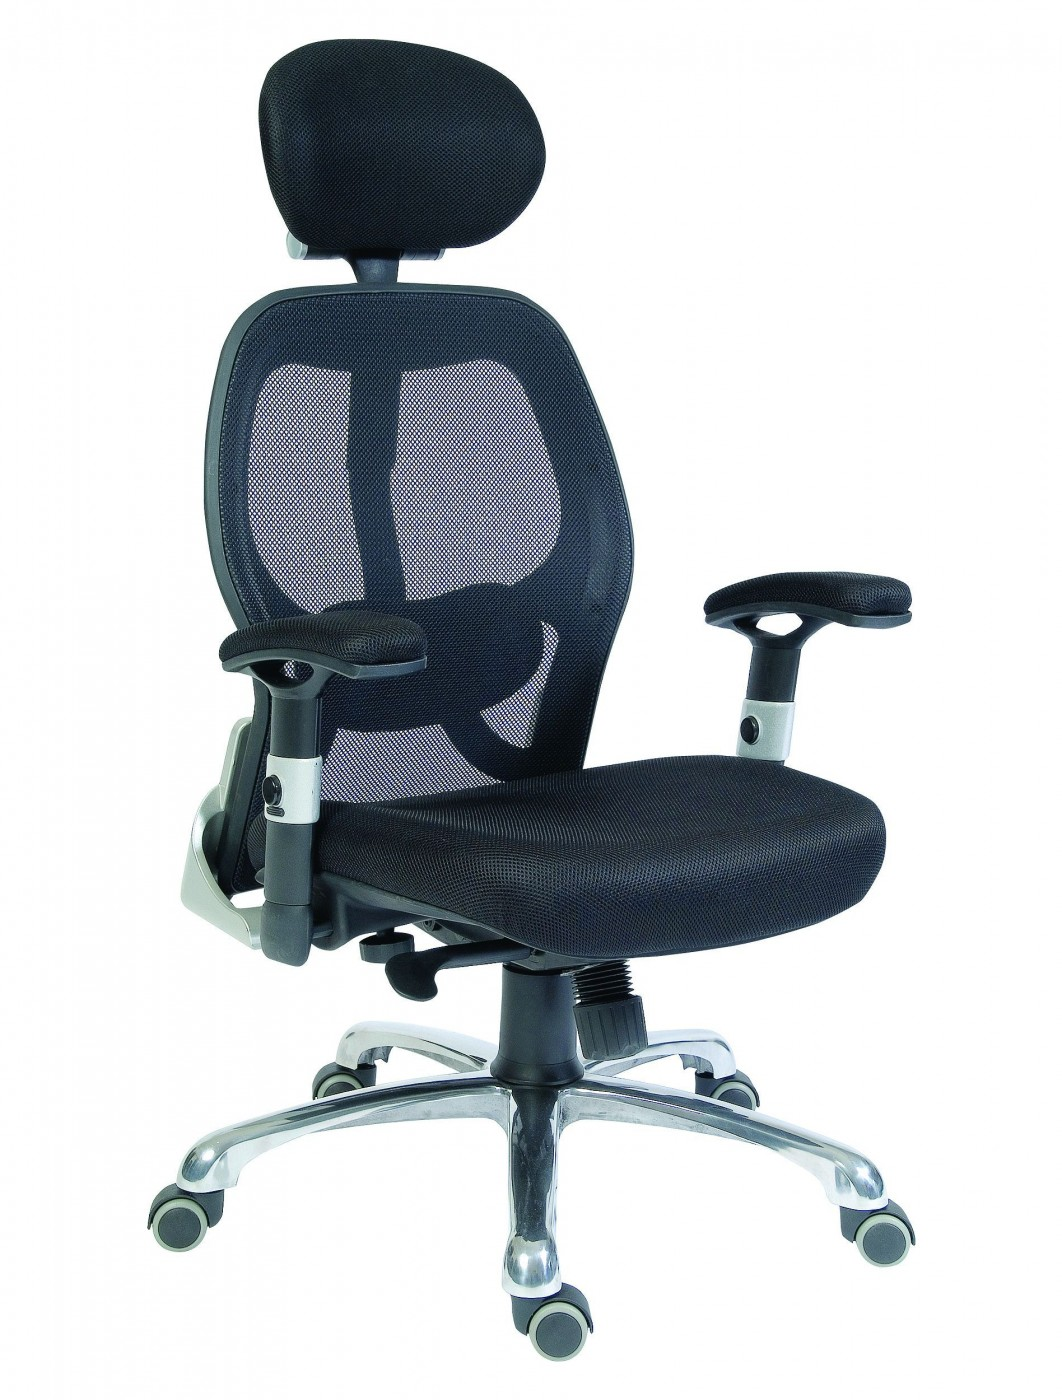 cobham mesh office chair oa1013 enlarged view